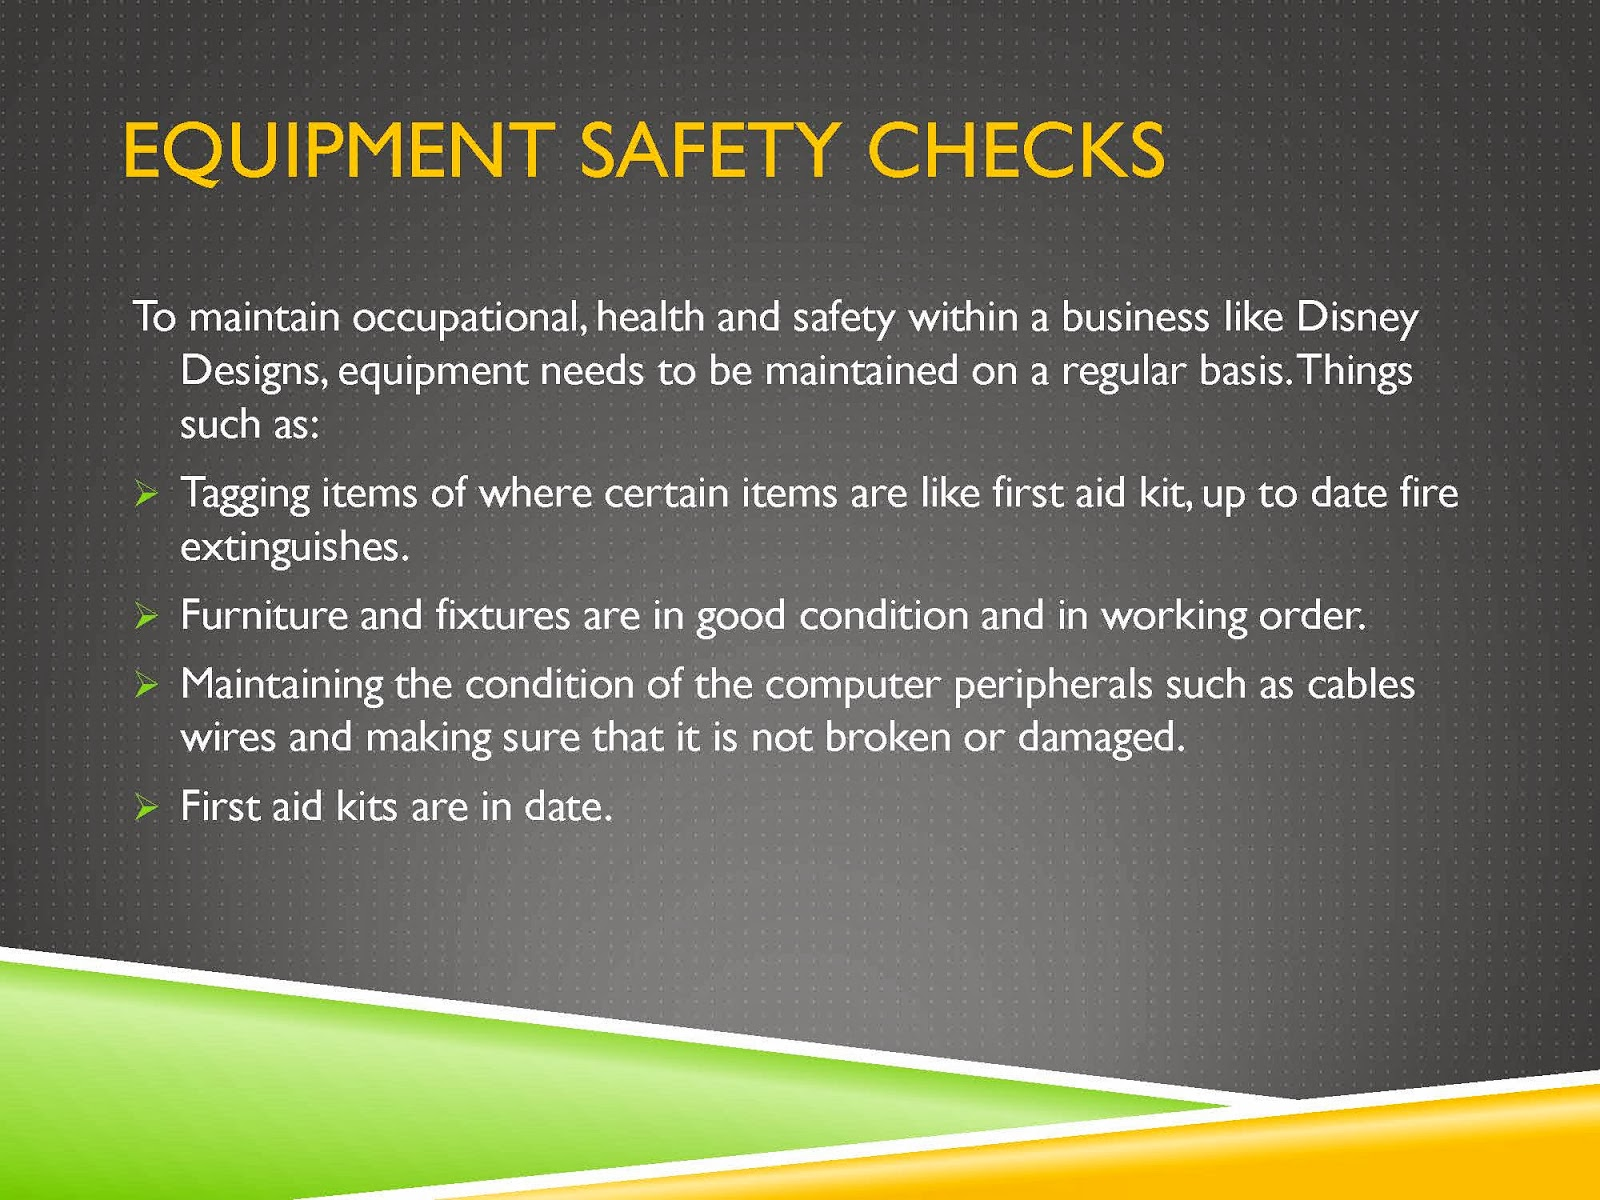 EQUIPMENT SAFETY CHECKS